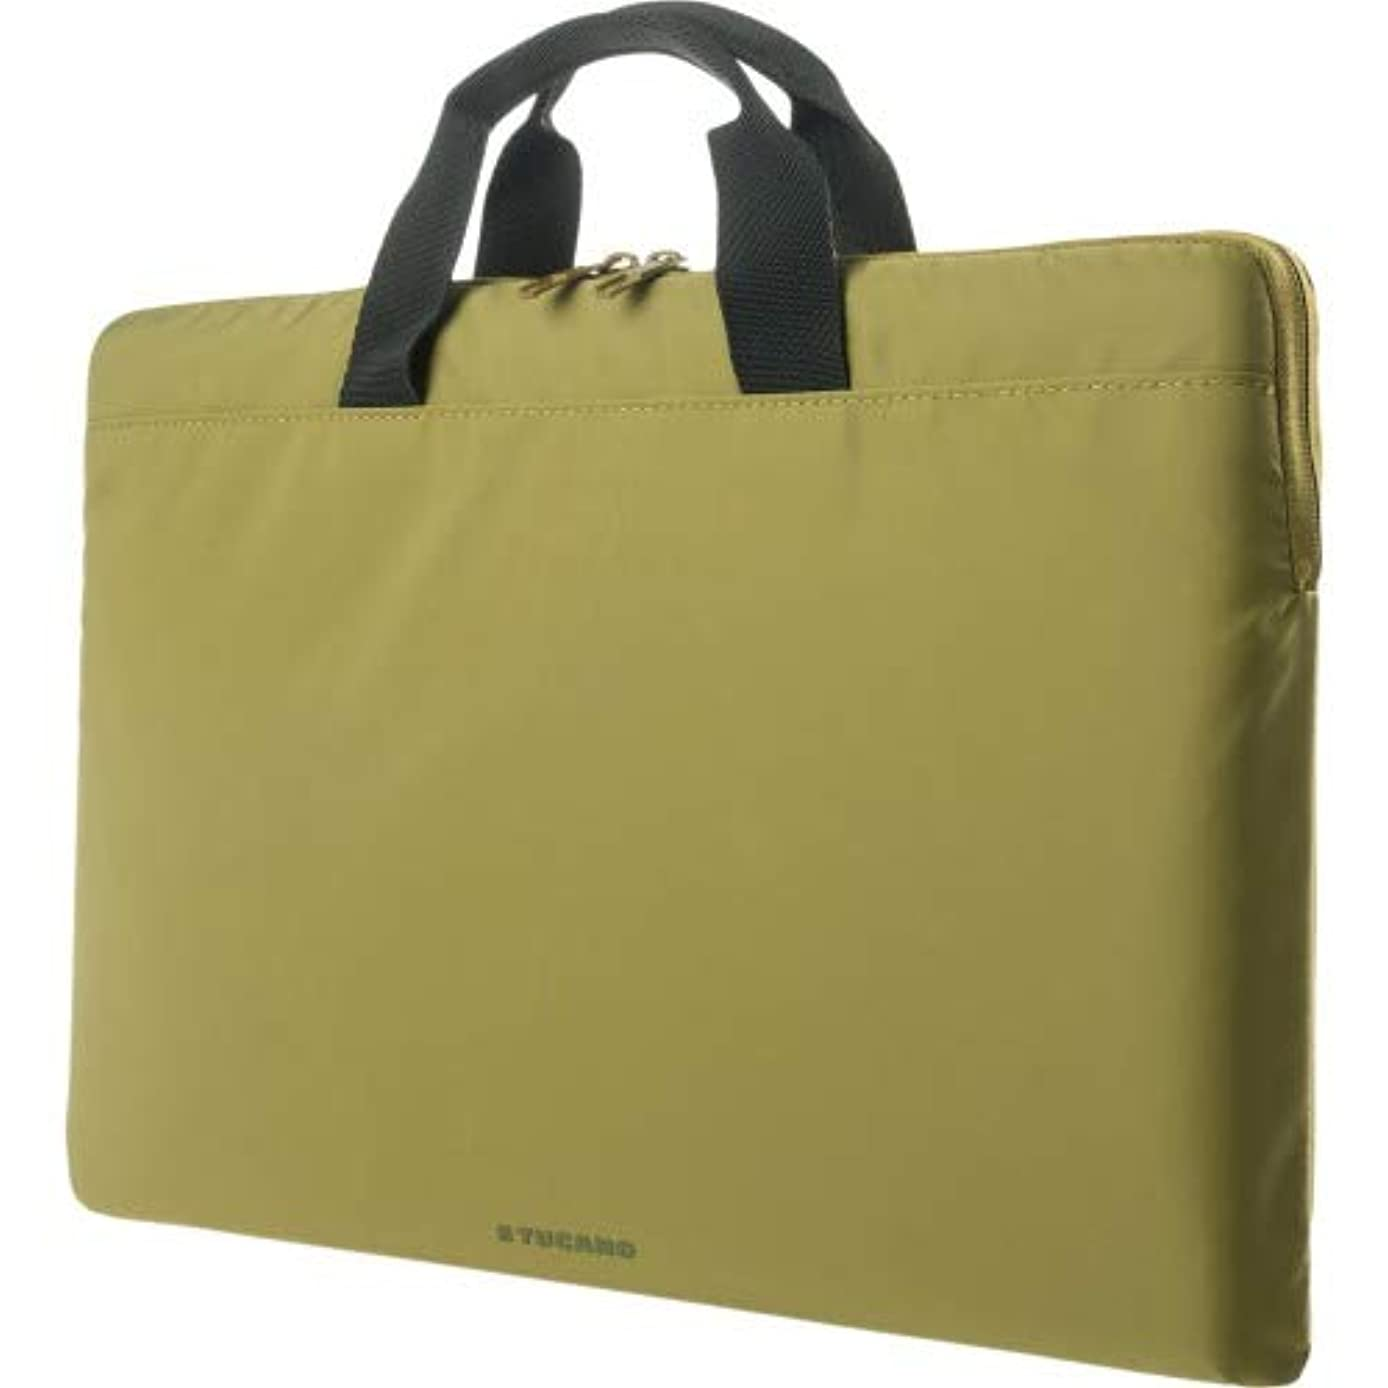 Tucano Minilux Carrying Case (Sleeve) for 15.6' Notebook, MacBook Pro, MacBook Pro (Retina Display) - Acid Green